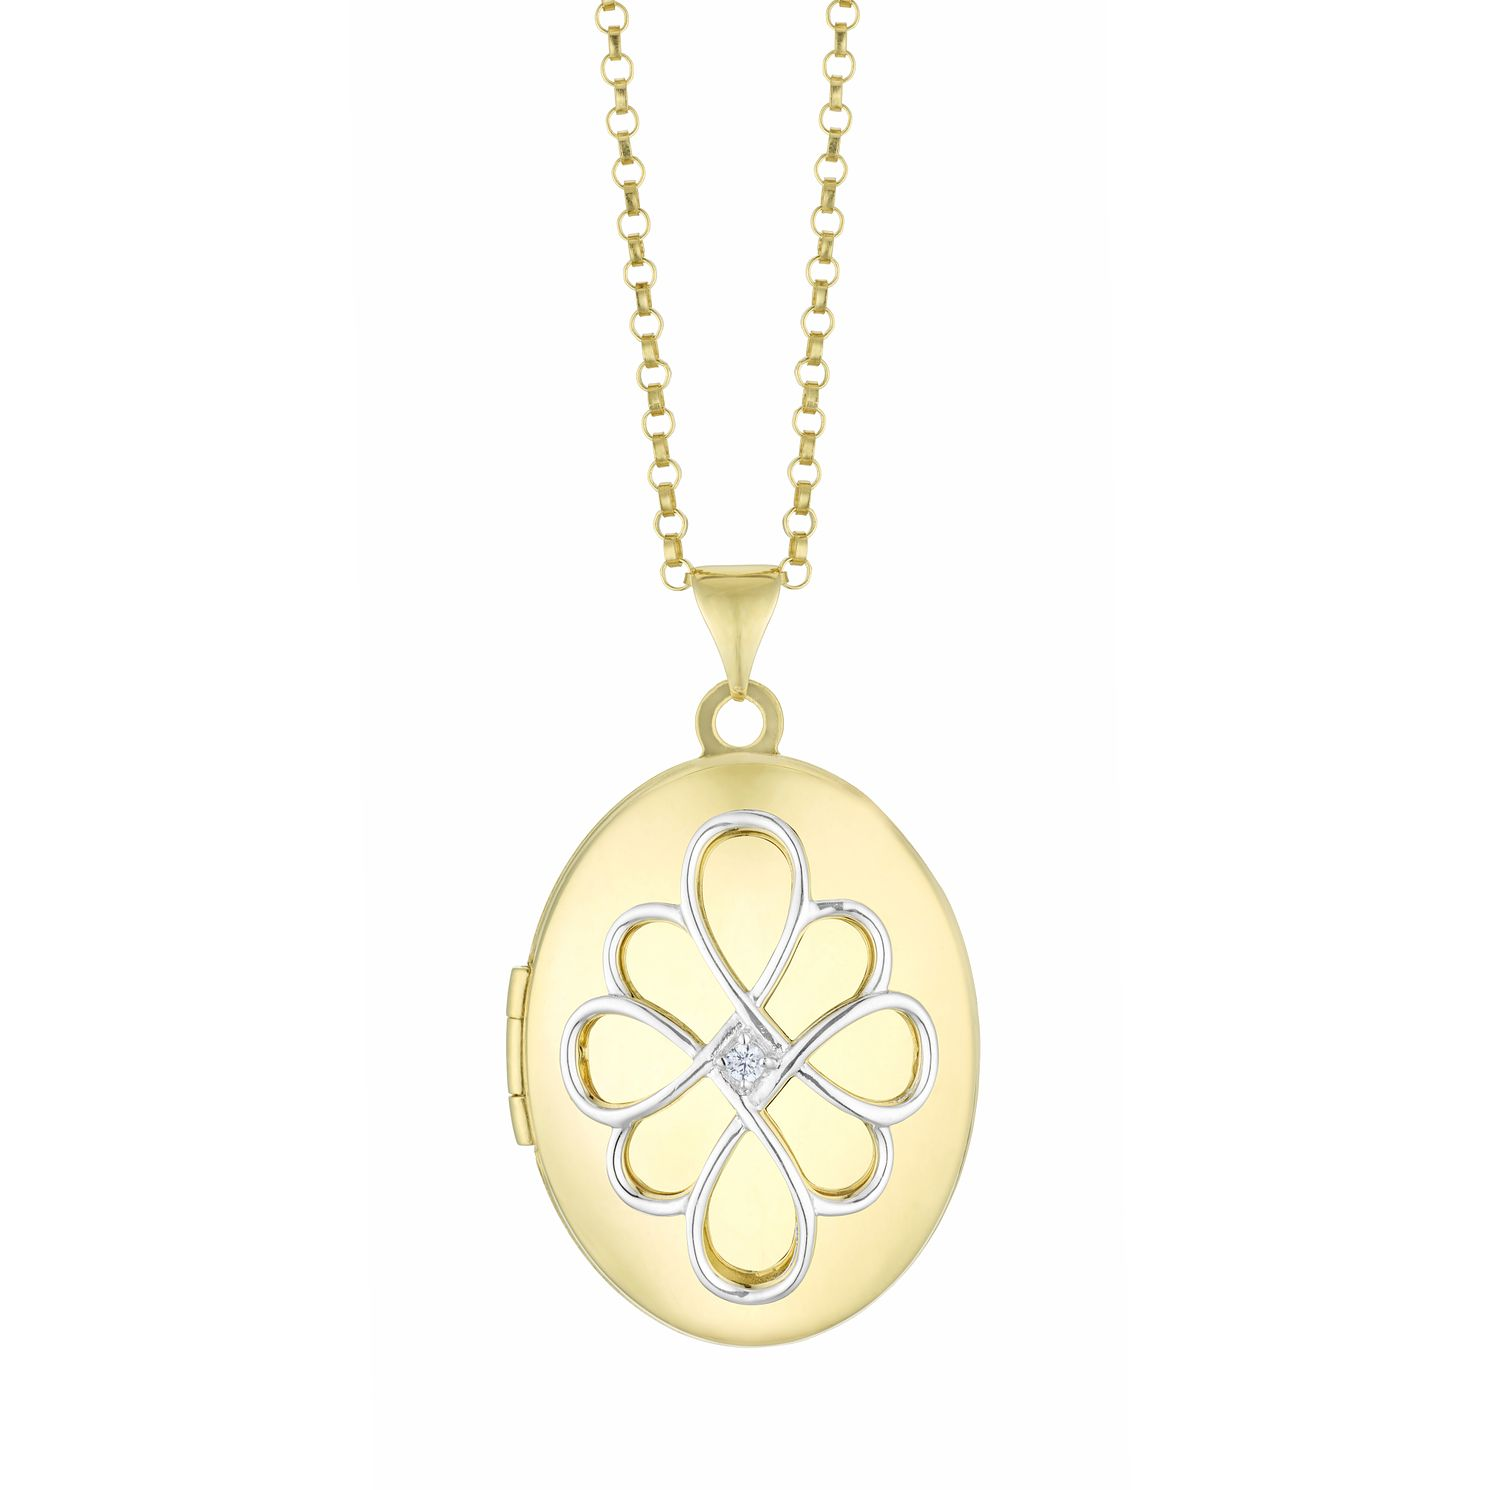 Silver & Yellow Gold Plated CZ Patterned Oval Locket - Product number 3128512